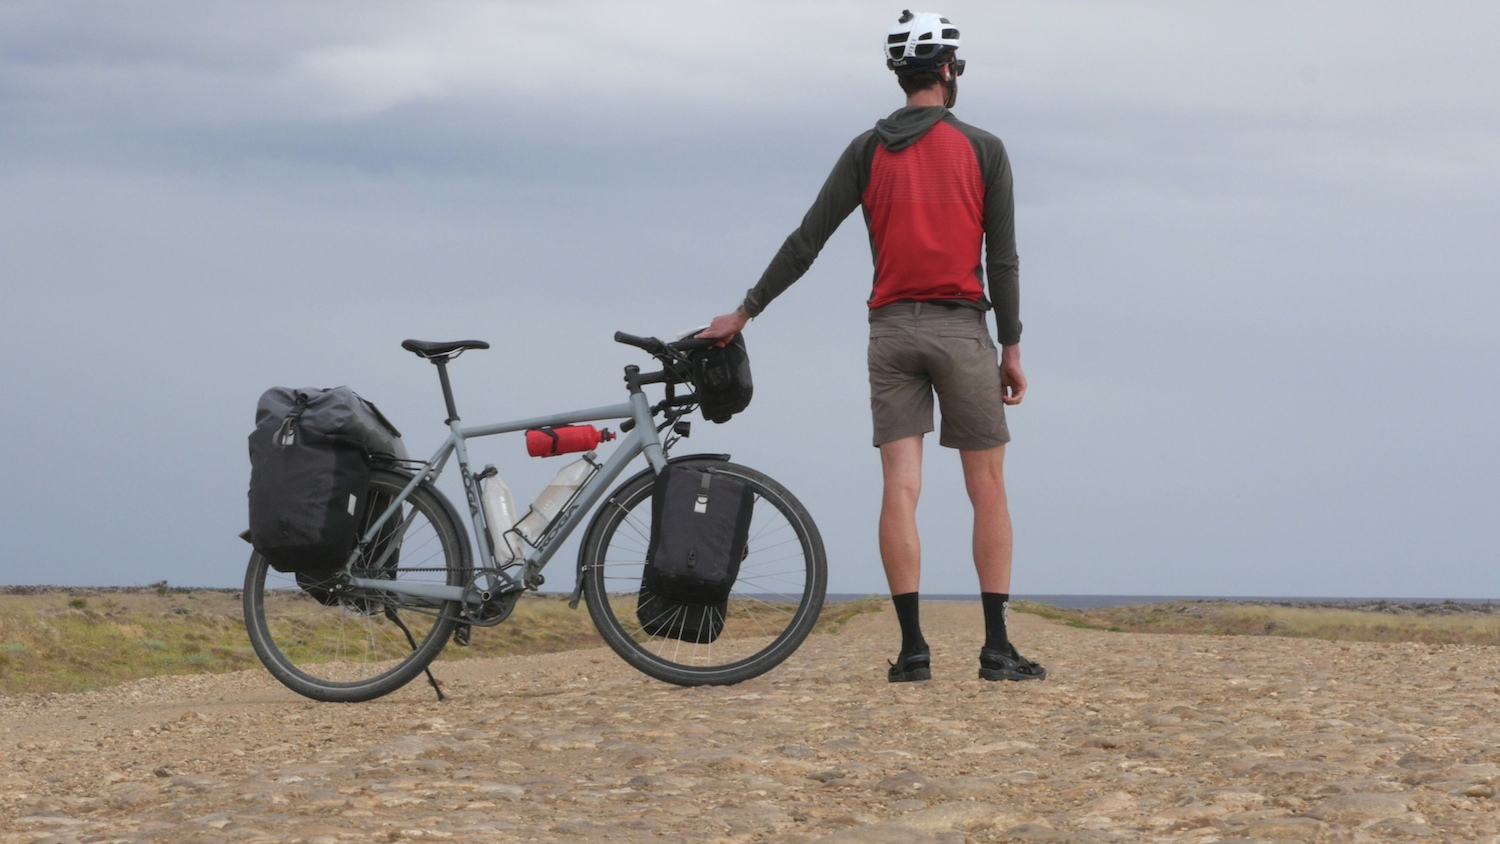 Alee Denham bicycle touring with Gates Carbon Drive belt system